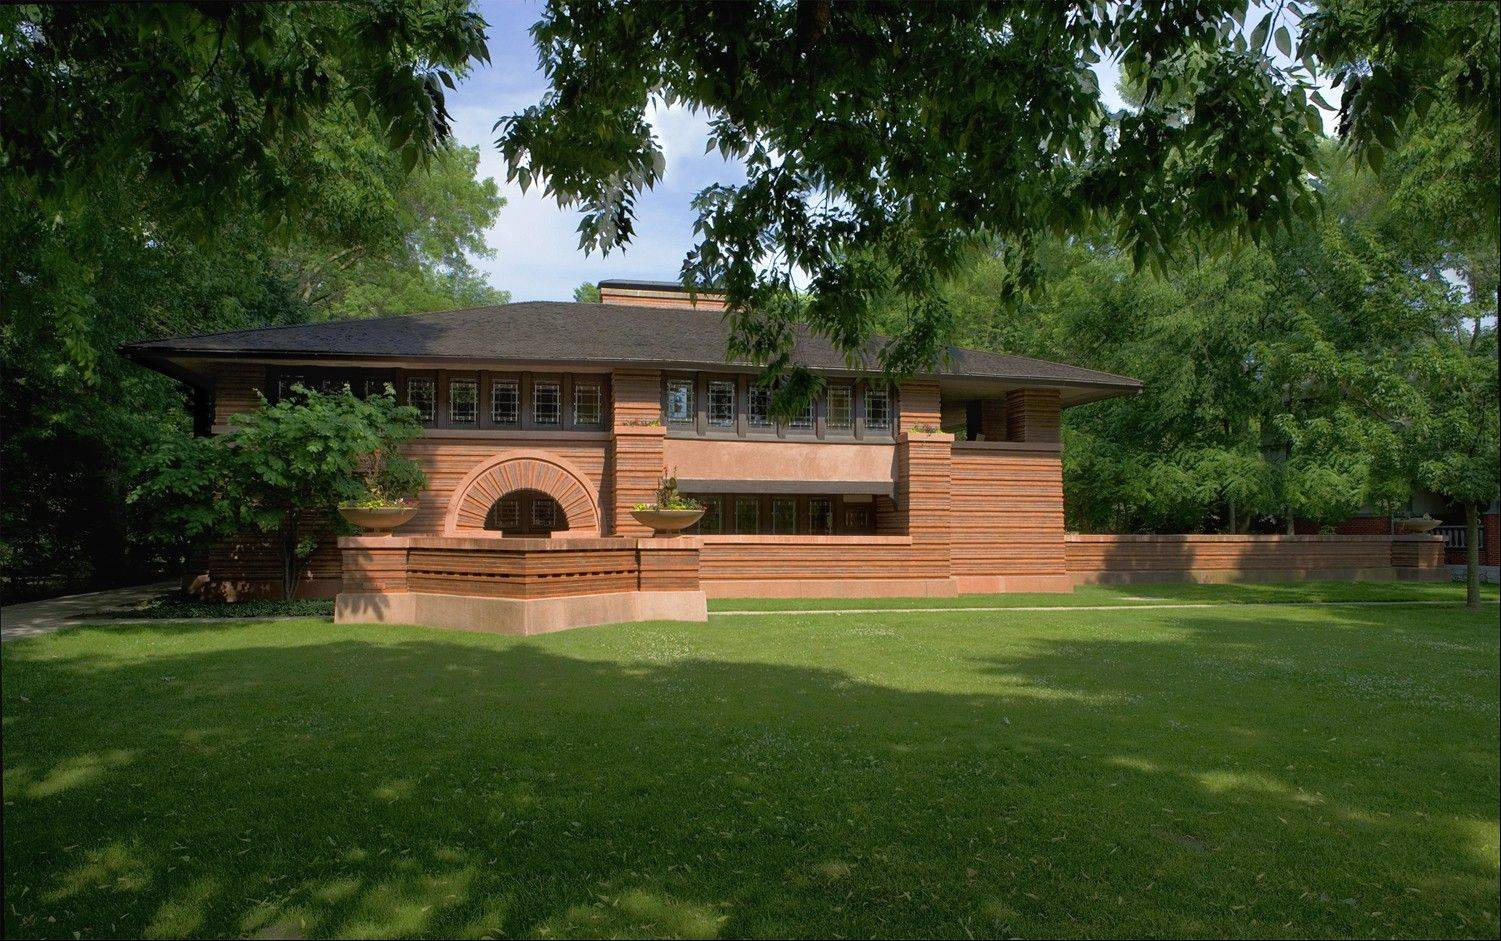 The Arthur and Grace Huertley house, designed by Wright and built in 1902, on Forest Avenue in Oak Park, is a few doors away from the Frank Lloyd Wright Home and Studio.